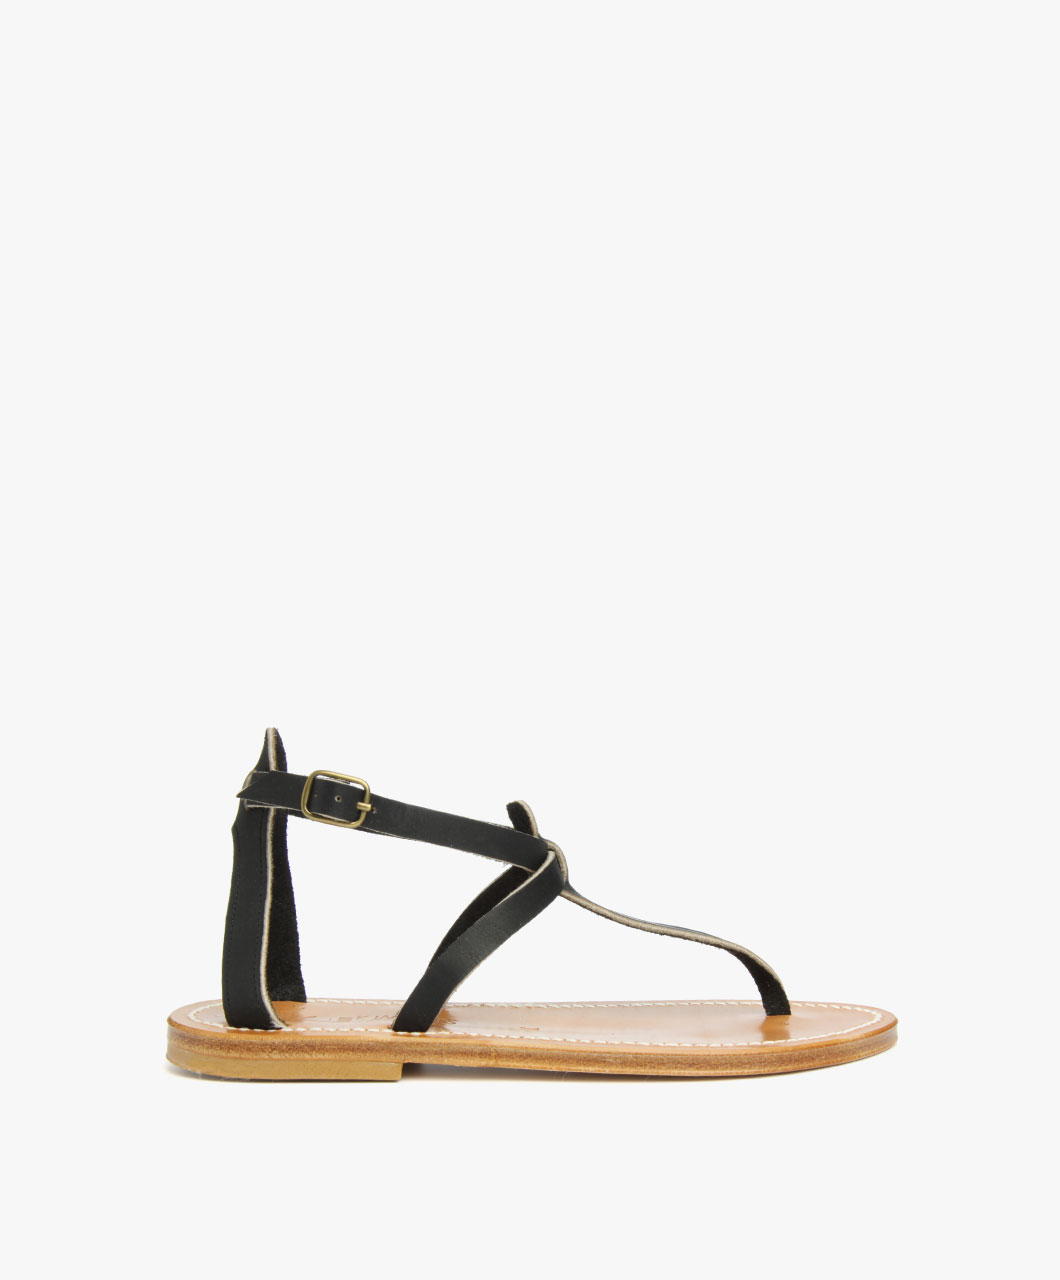 K Jacques St. Tropez Leather Slide Sandals view for sale echxvbhuM